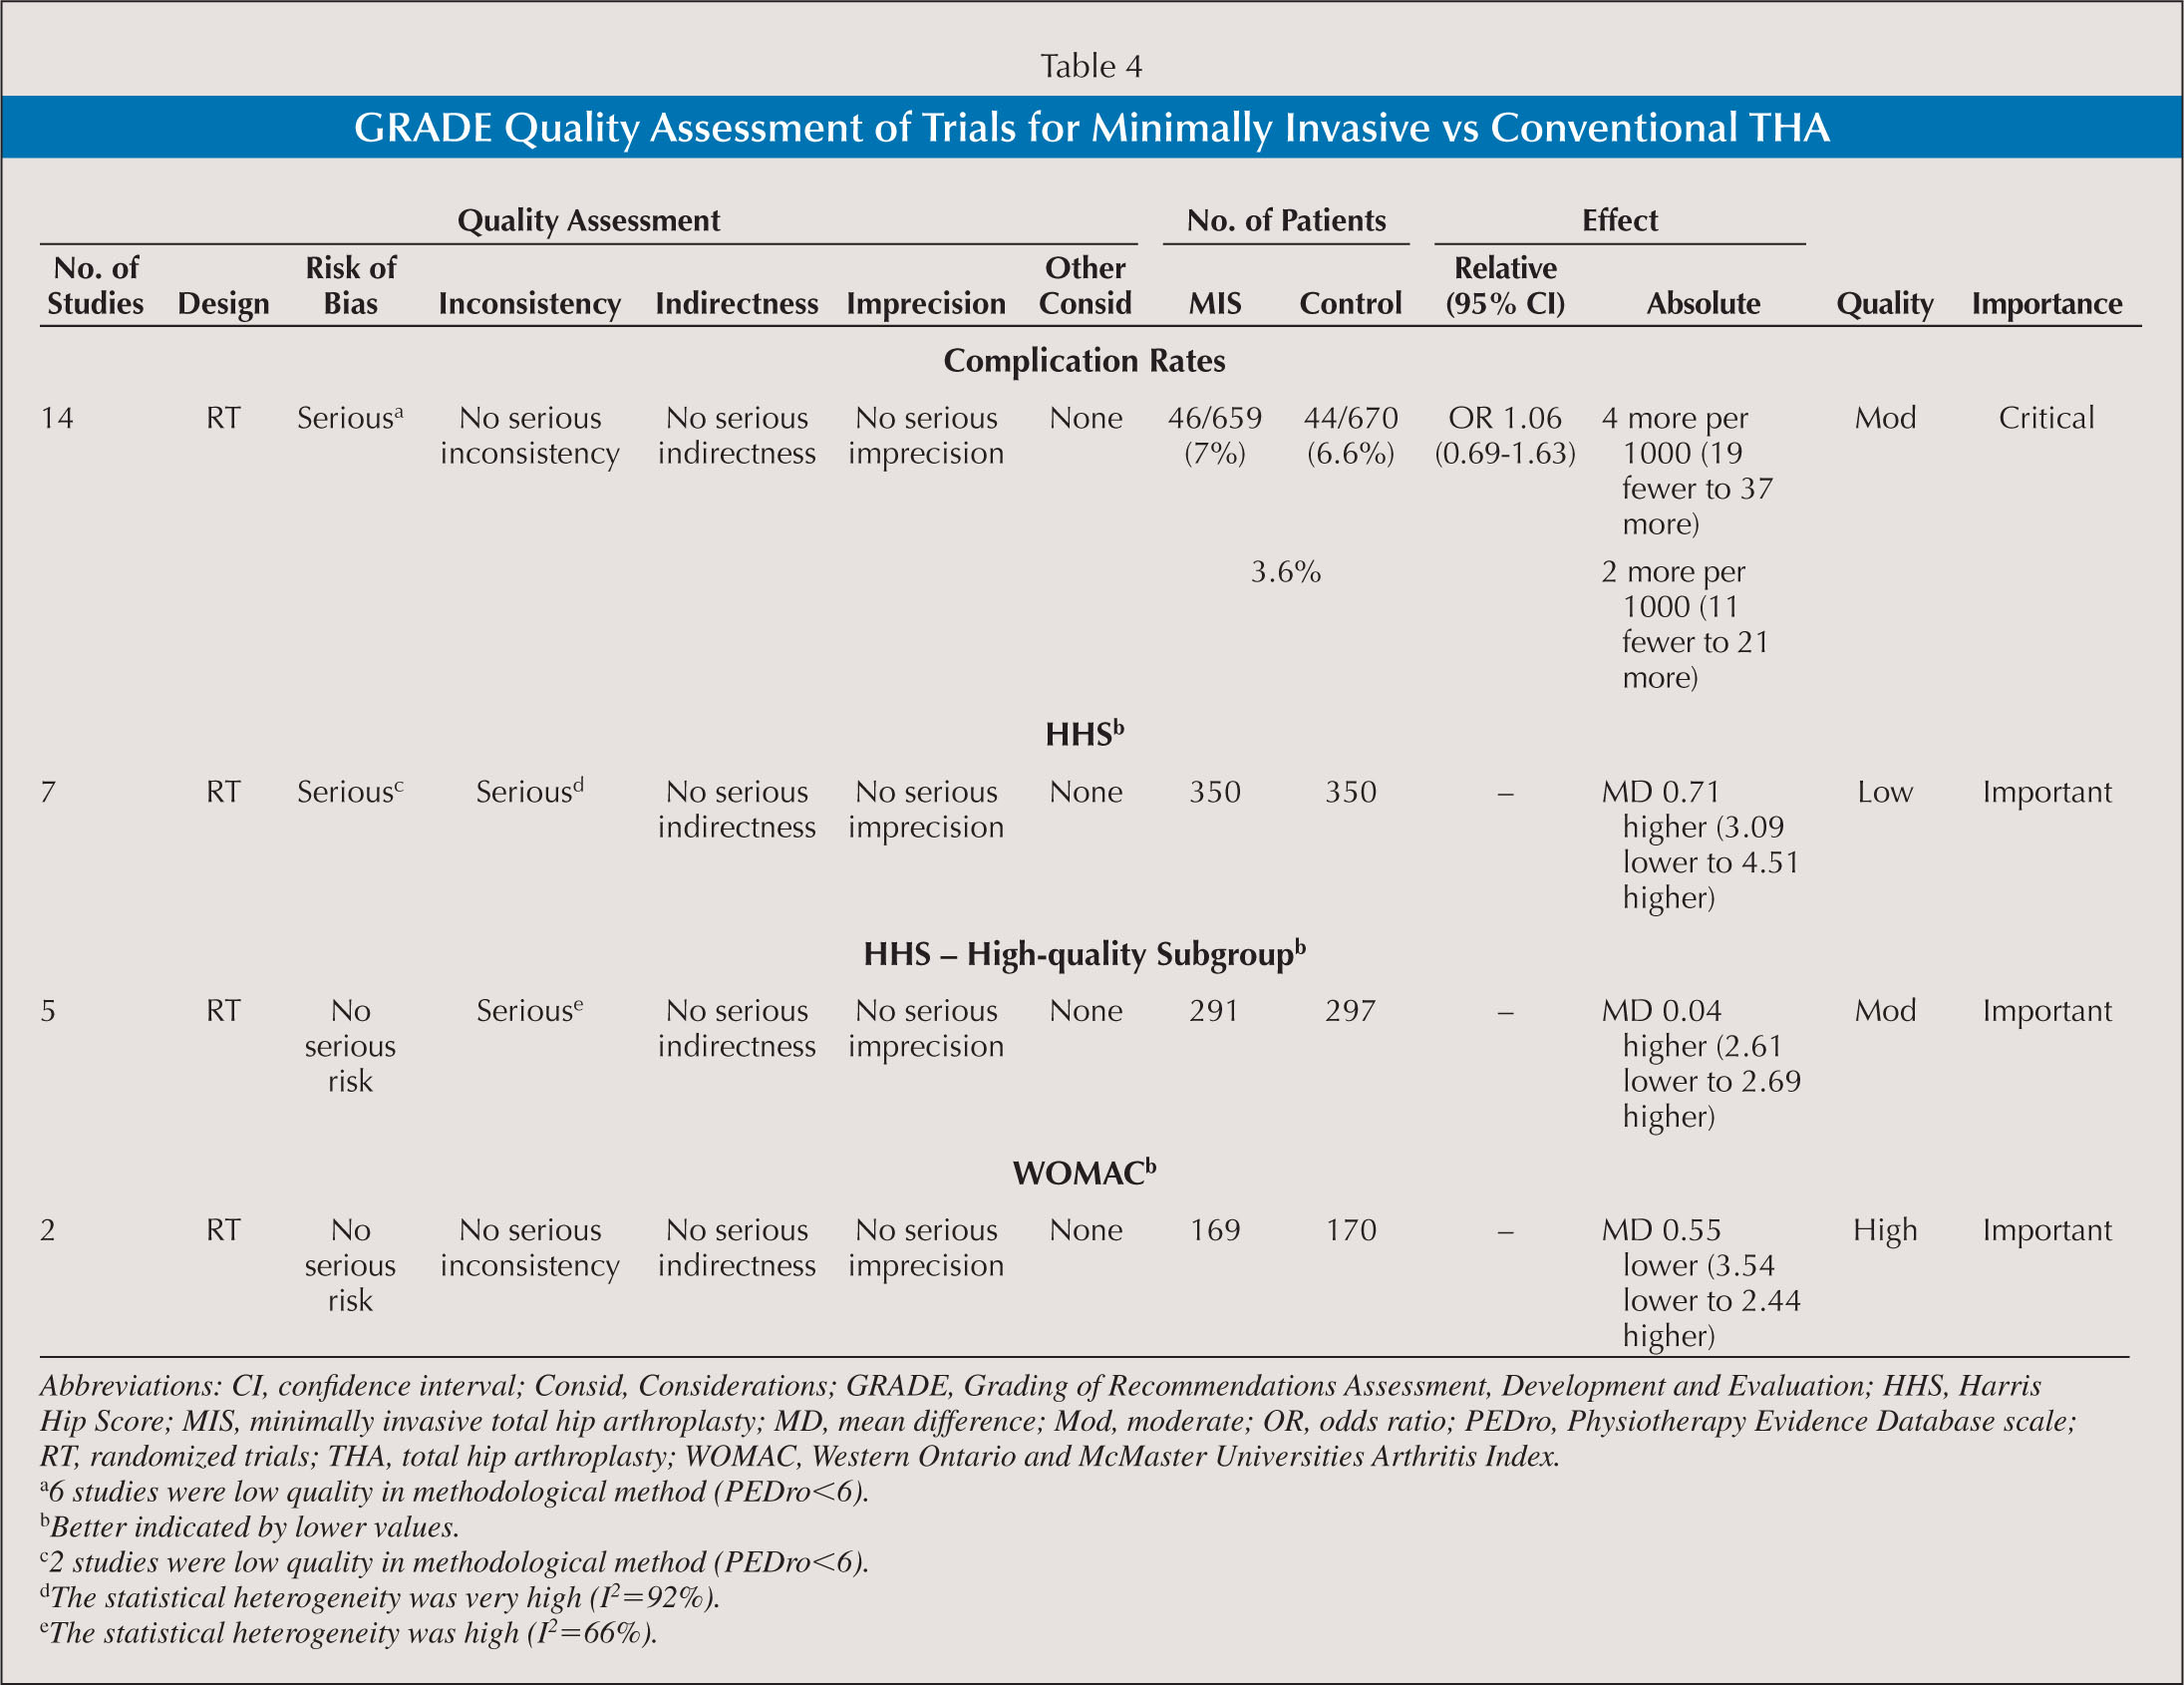 GRADE Quality Assessment of Trials for Minimally Invasive vs Conventional THA